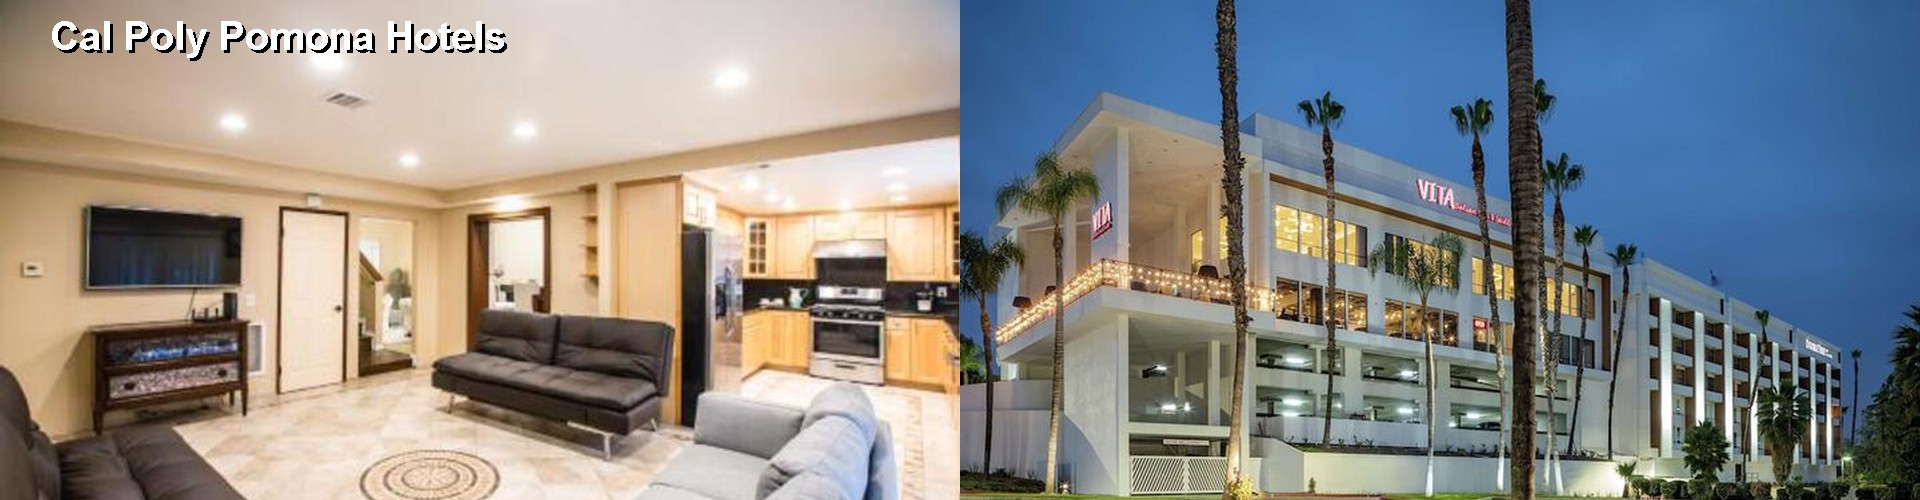 5 Best Hotels near Cal Poly Pomona